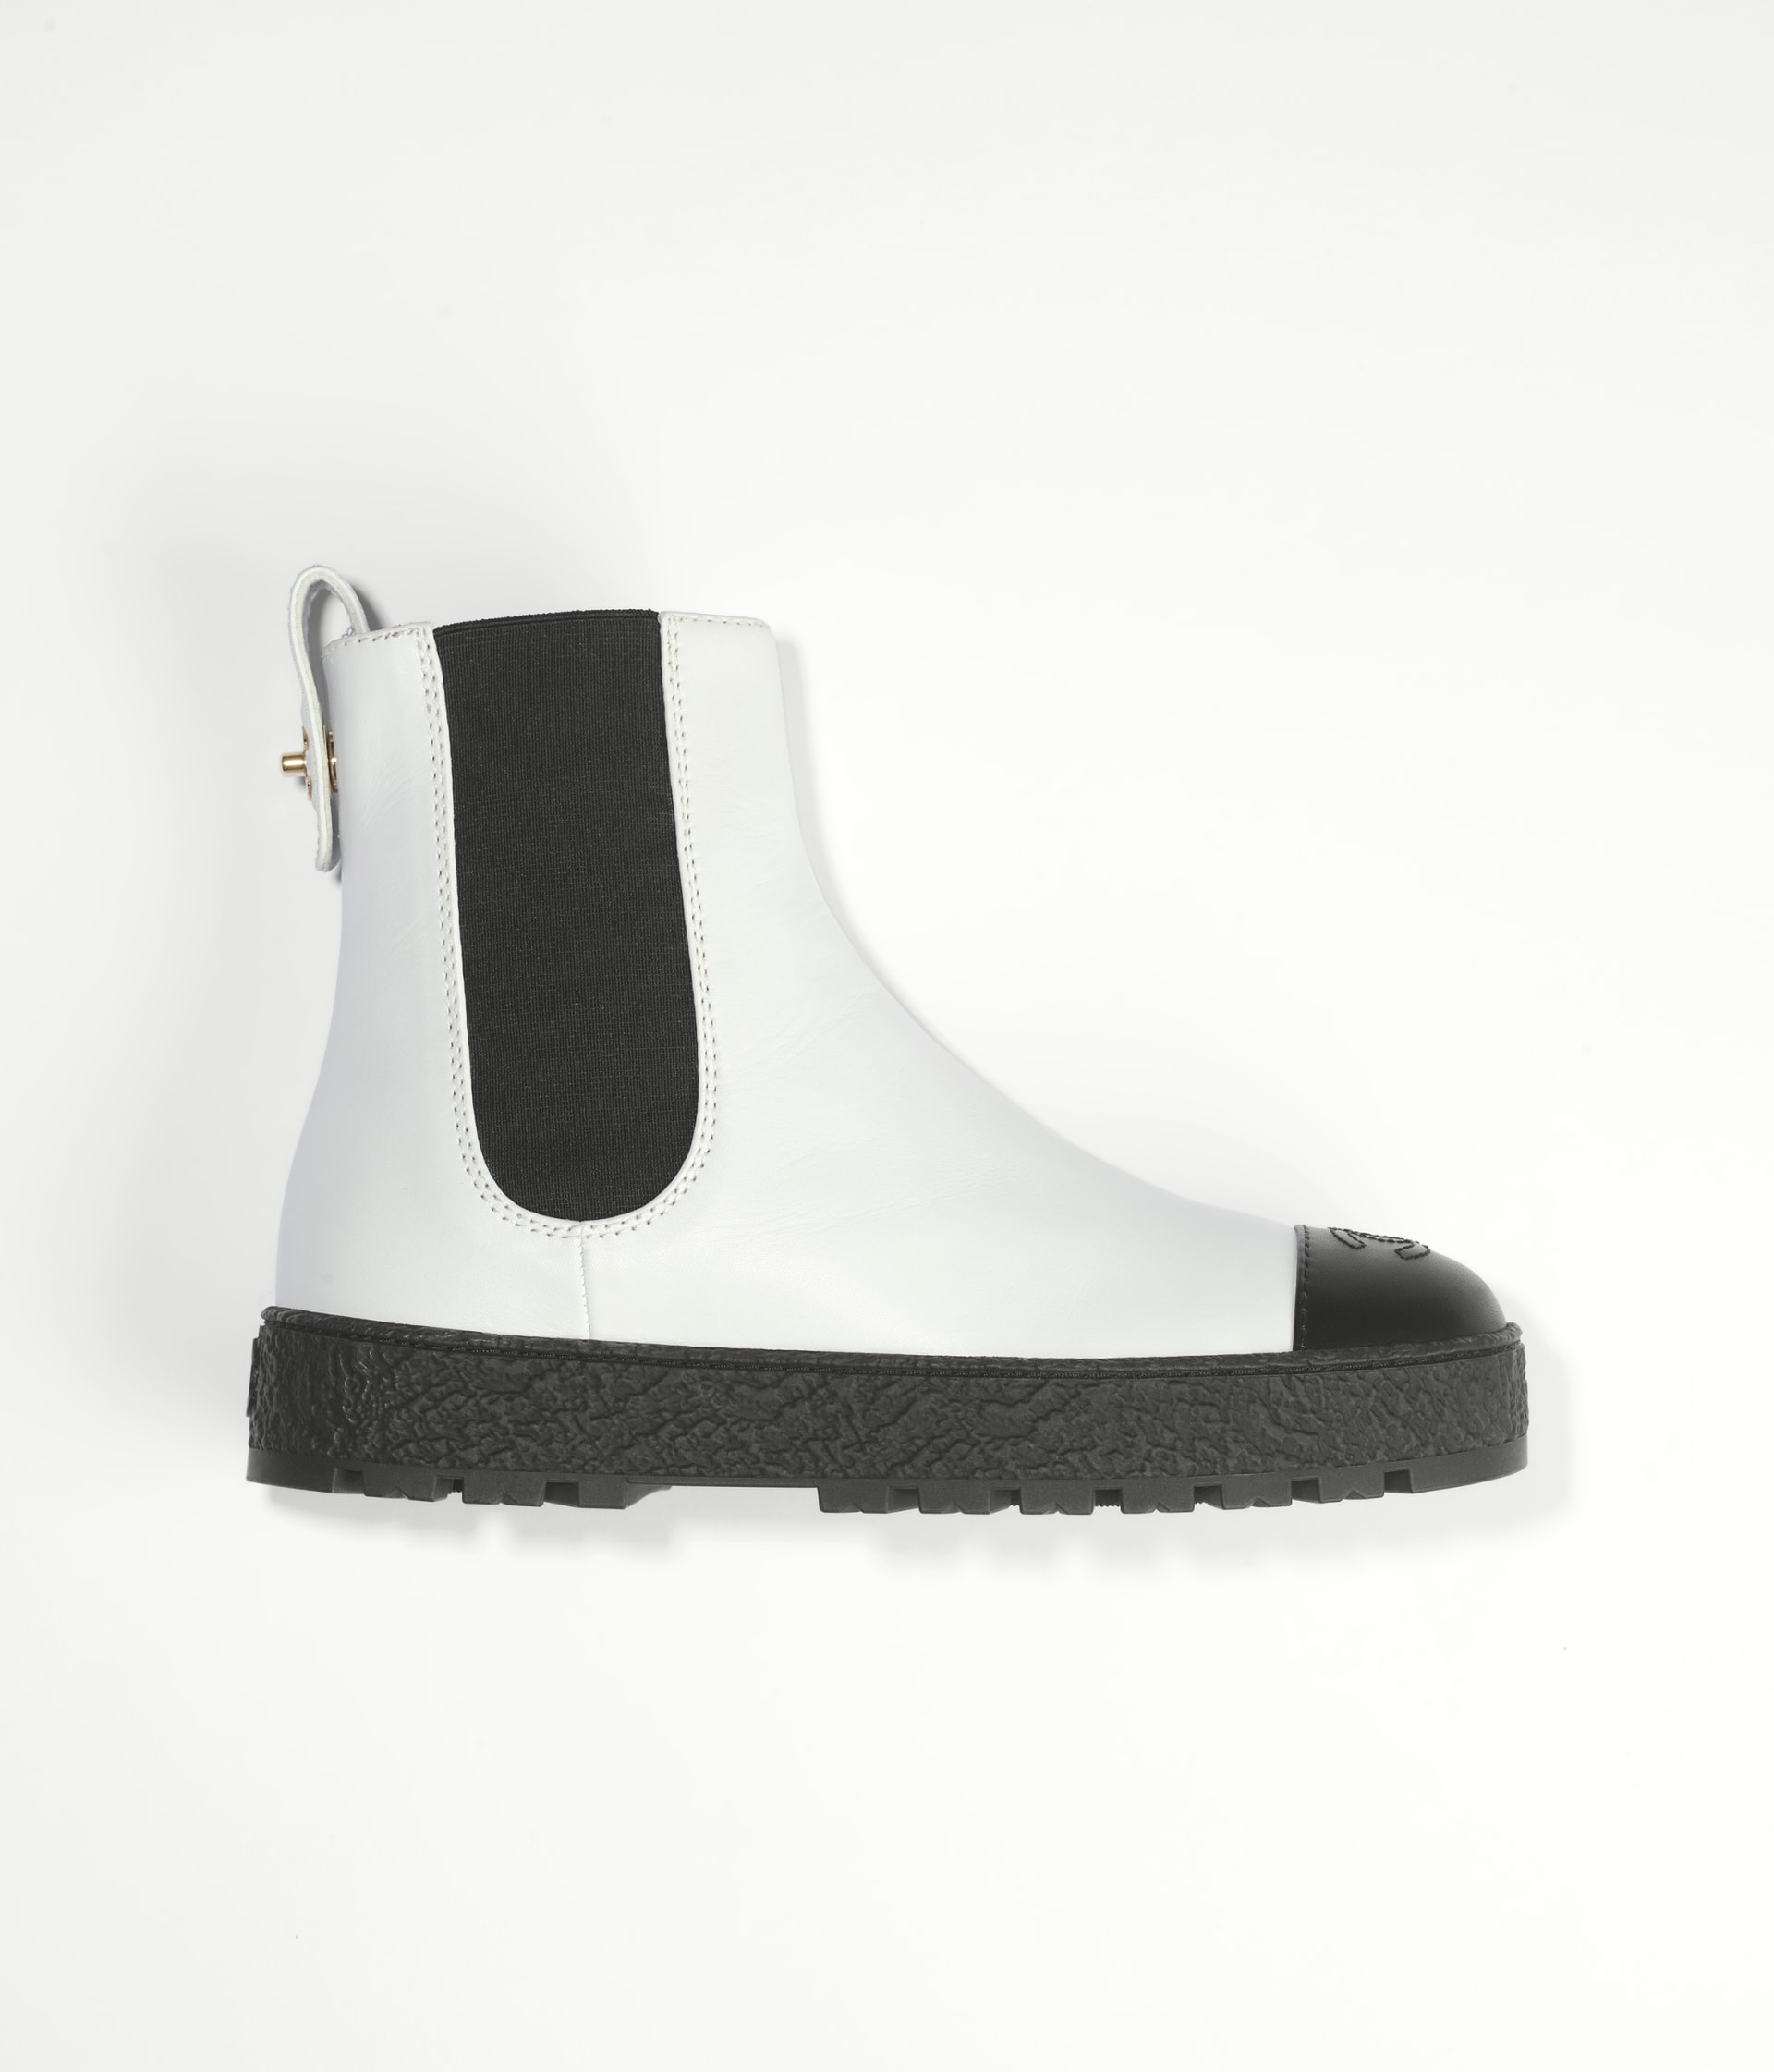 image 1 - Ankle Boots - Calfskin - White & Black